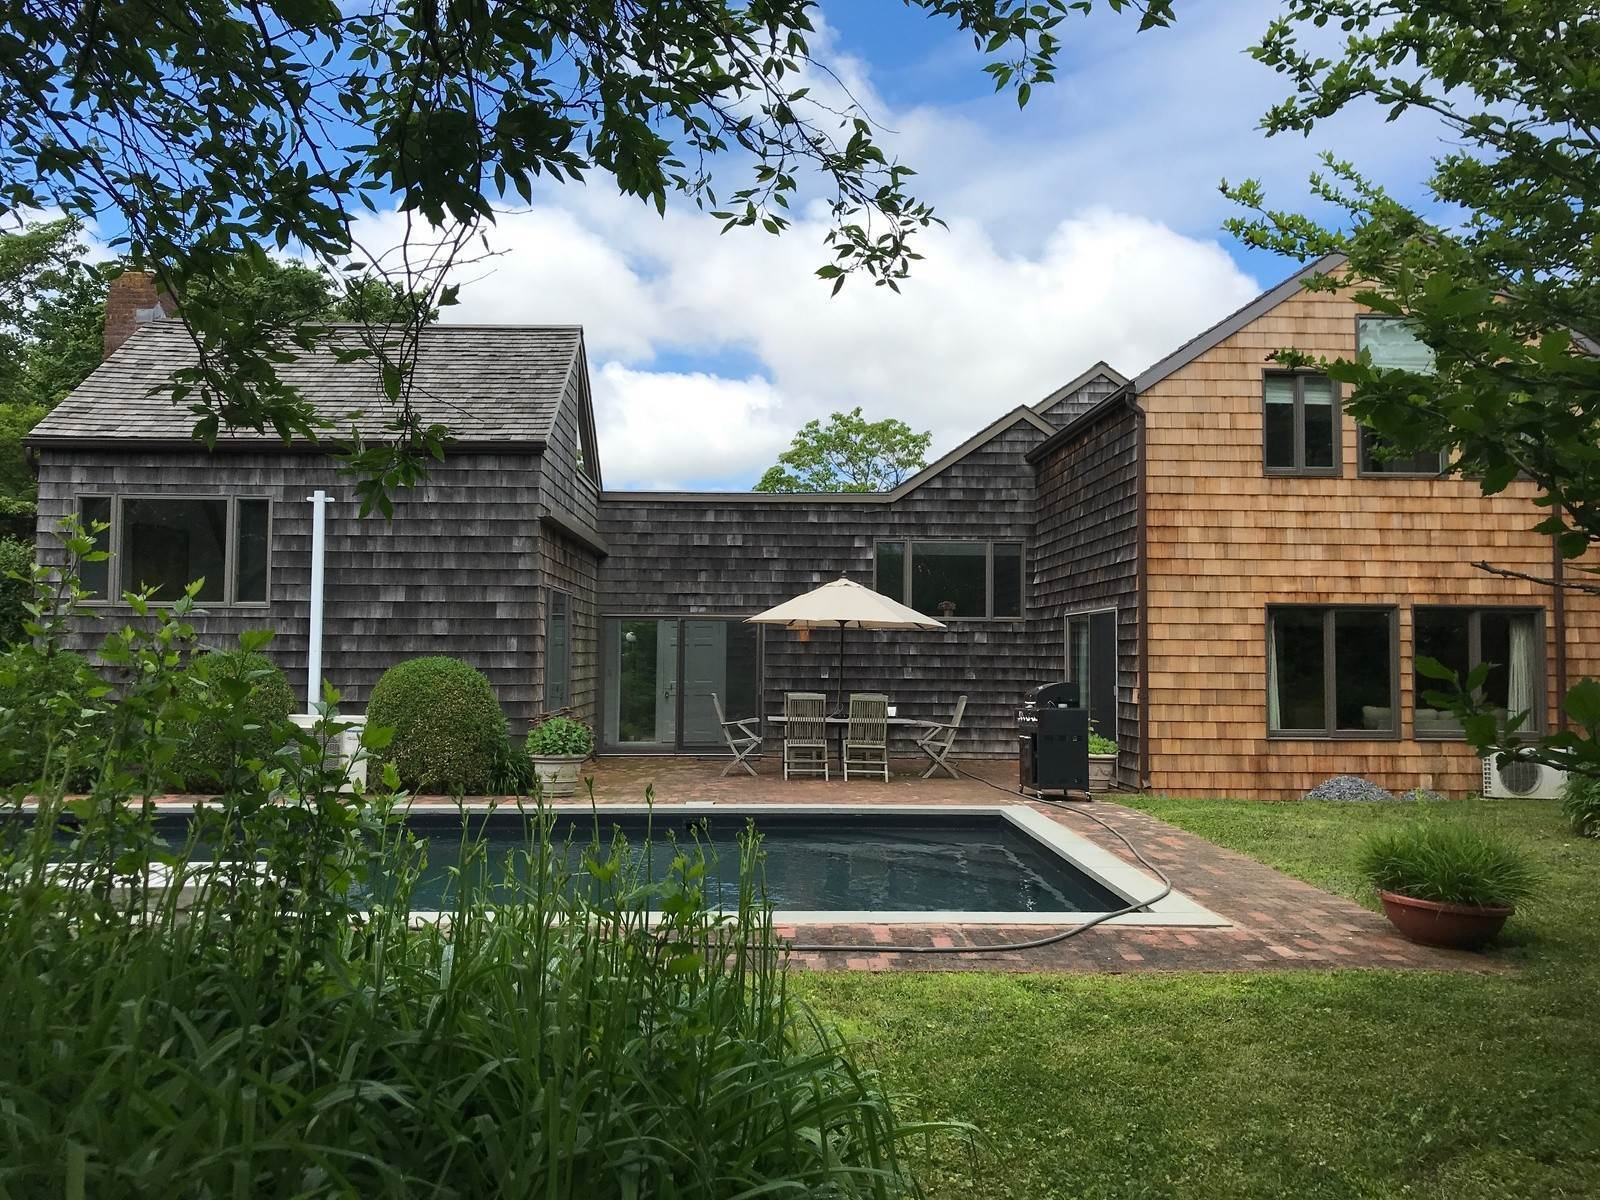 18. Other at Sagaponack South Near Ocean Sagaponack Village, NY 11962